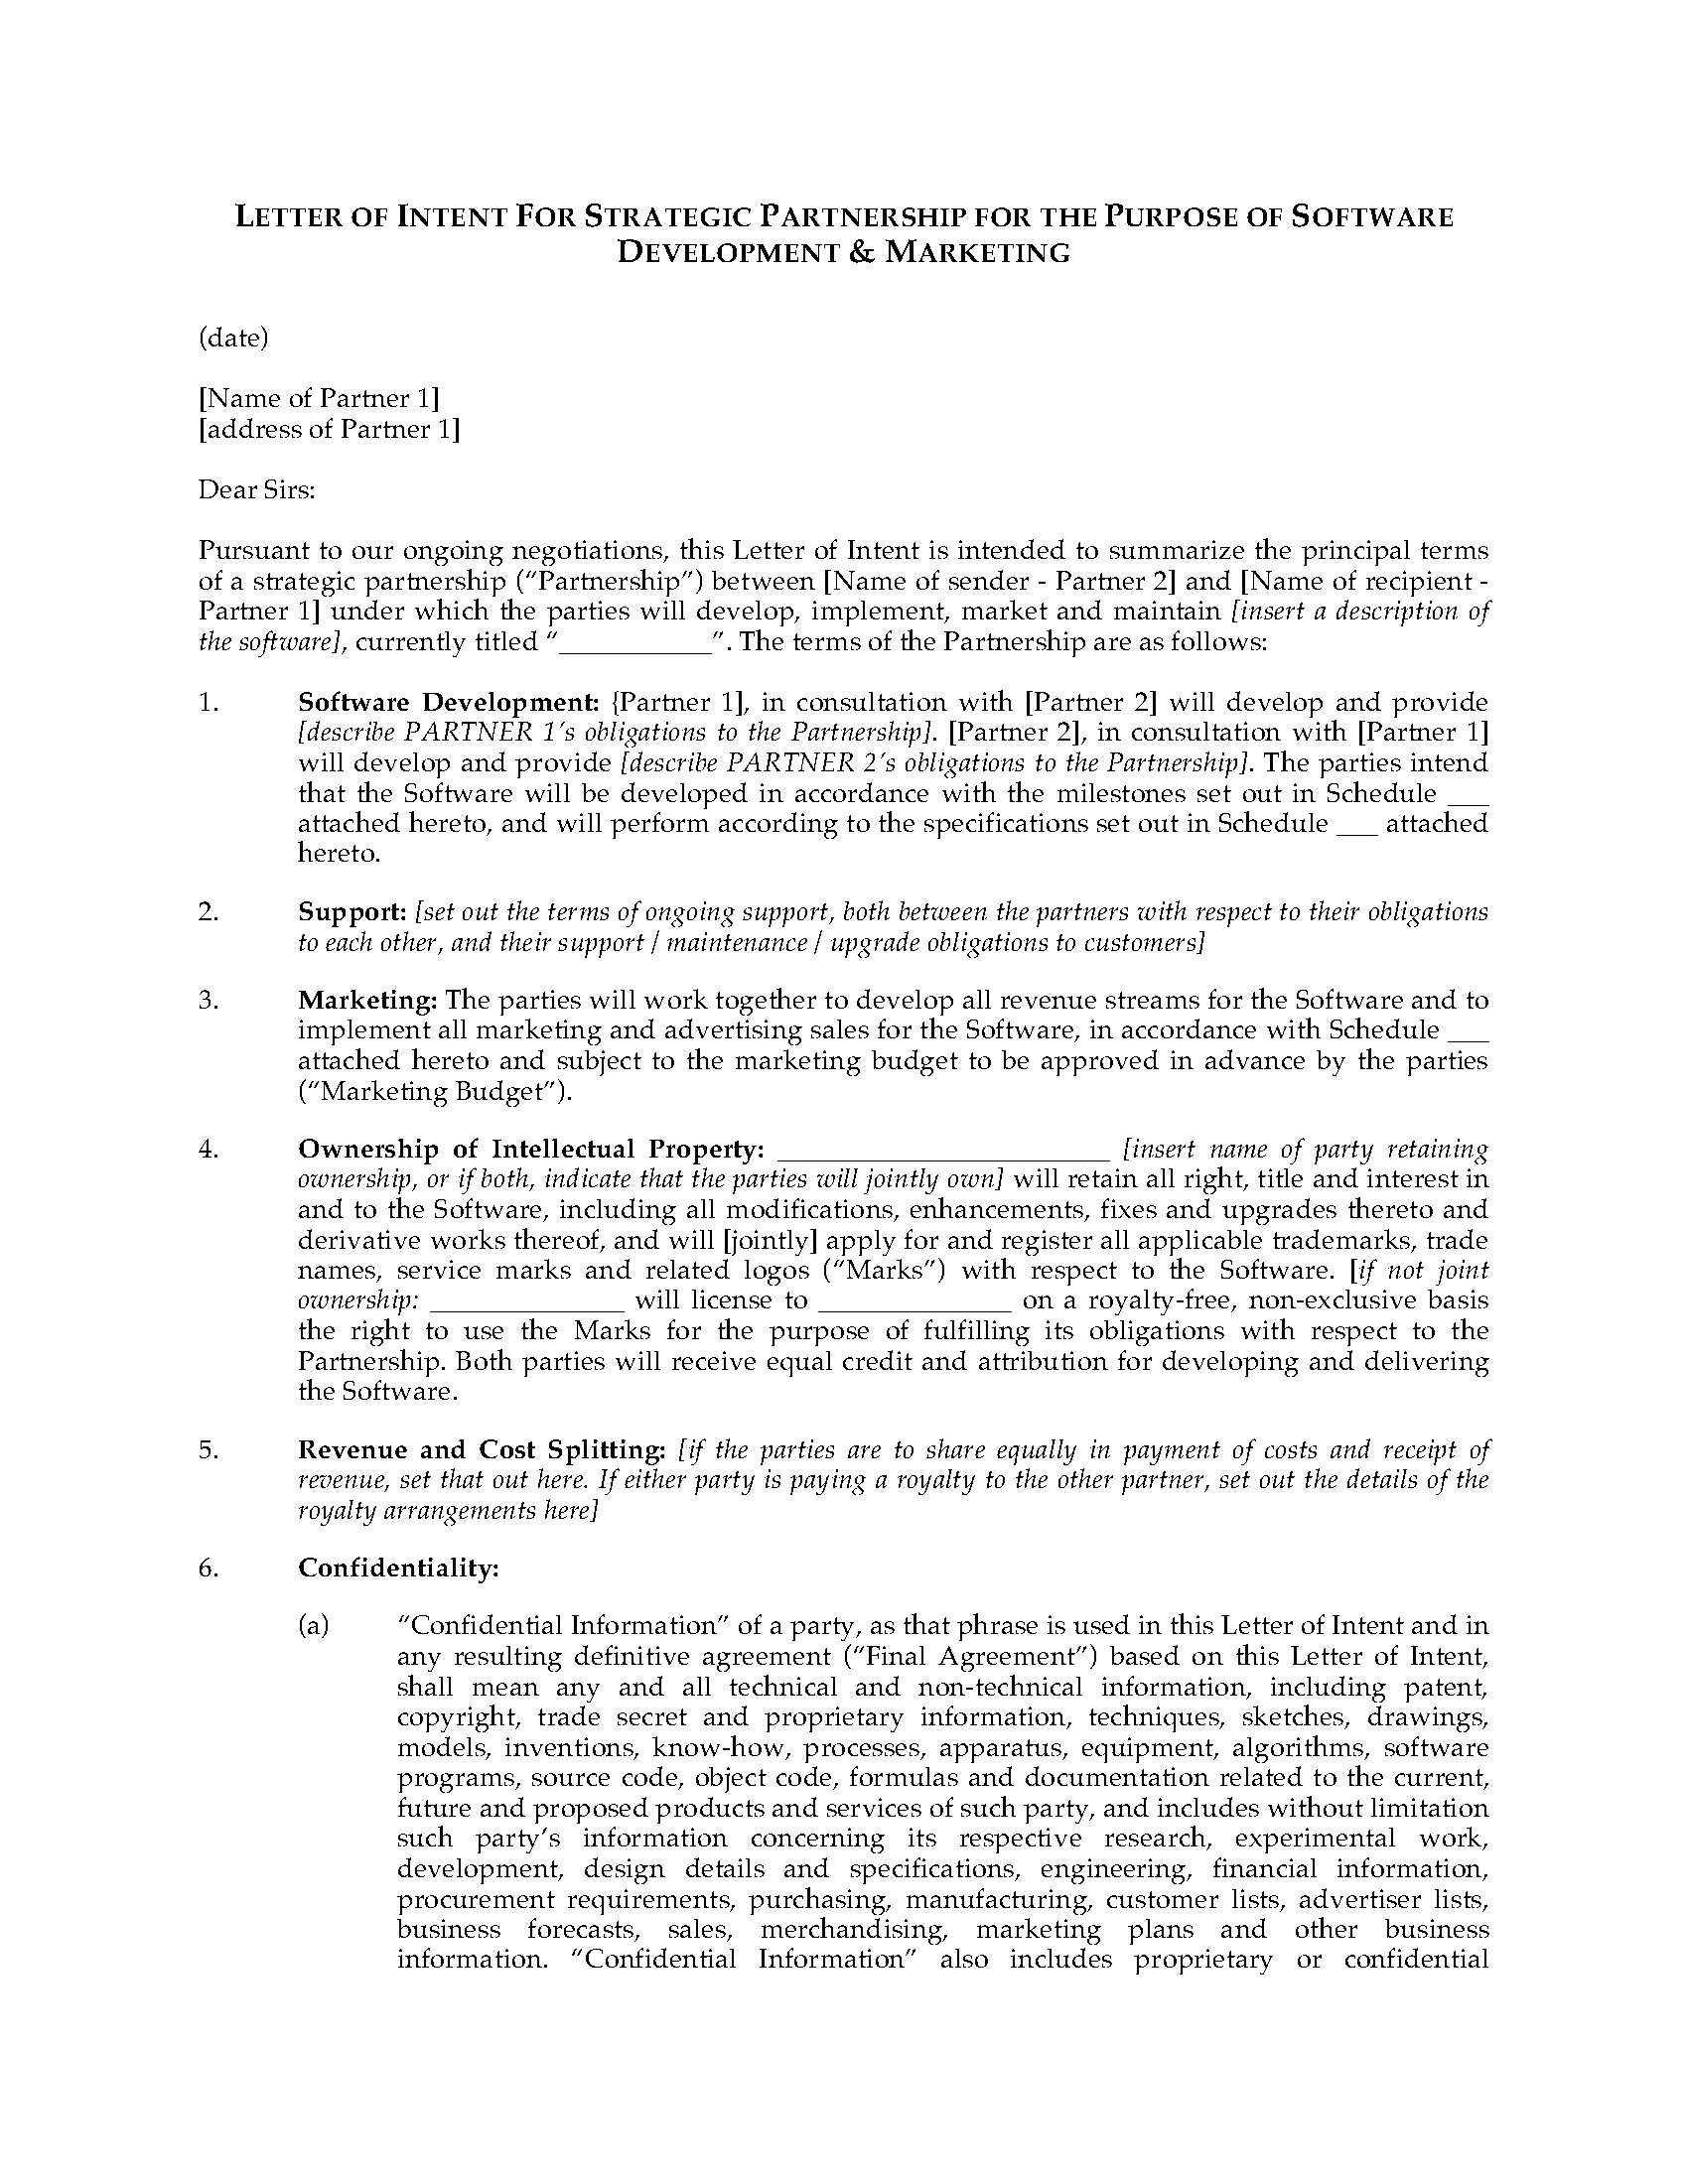 Letter of intent for software development partnership legal forms picture of letter of intent for software development partnership spiritdancerdesigns Images